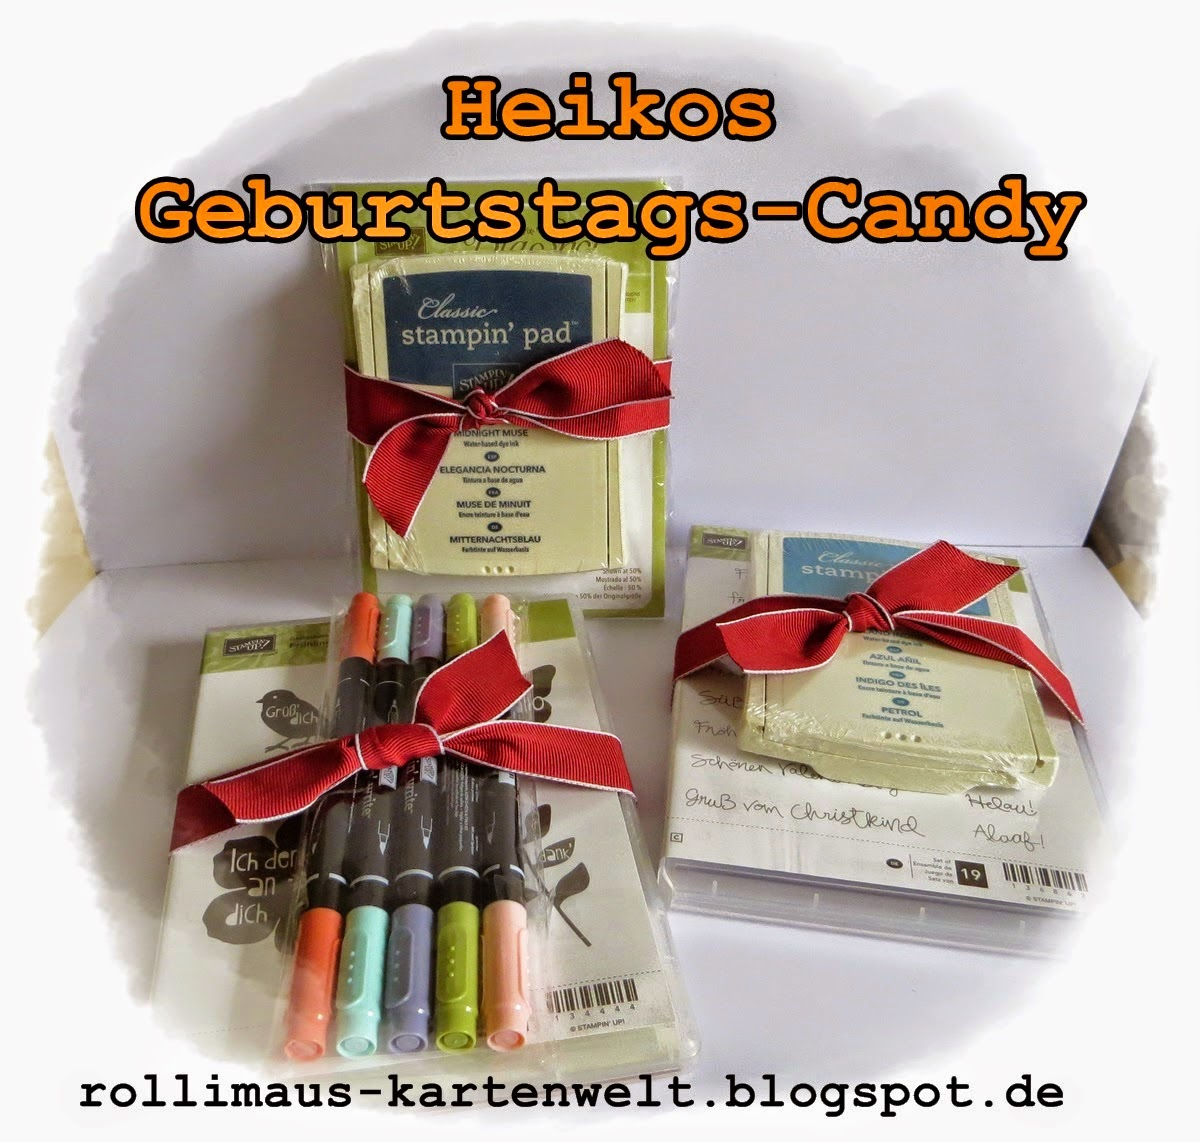 http://rollimaus-kartenwelt.blogspot.co.at/2015/01/heikos-geburtstags-candy-2015.html